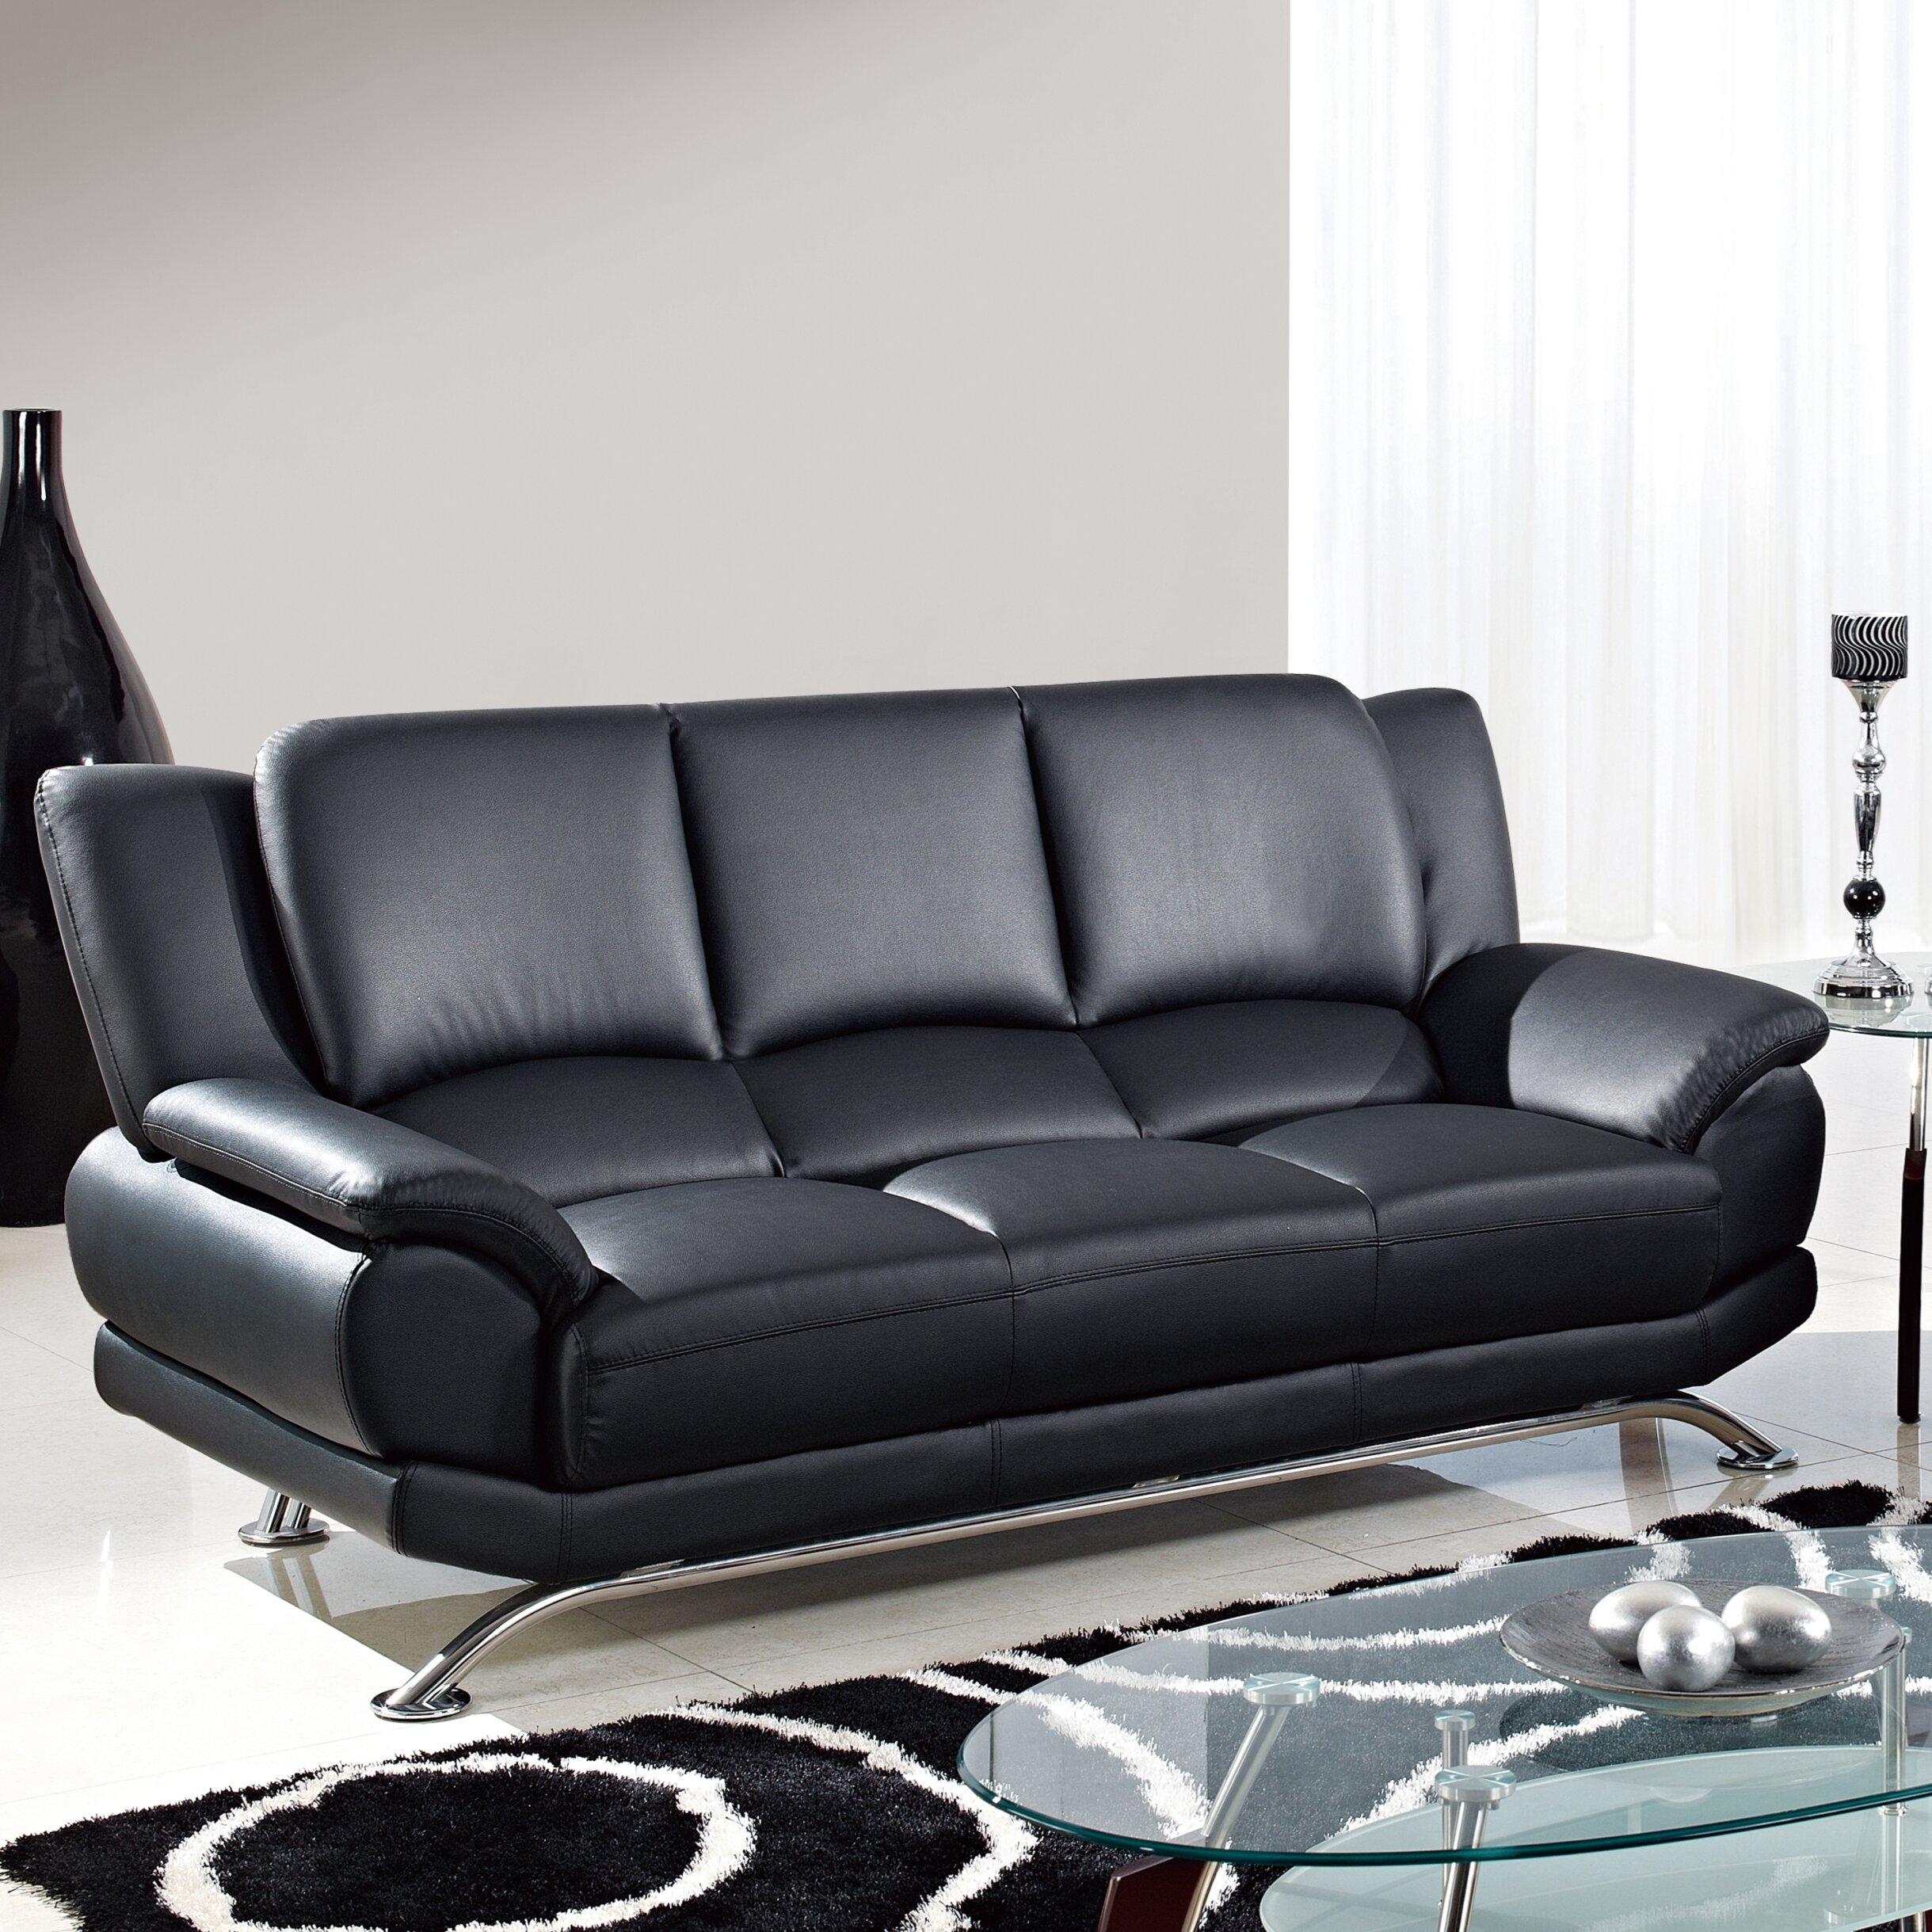 Wayfair Com Sales: Global Furniture USA Sofa